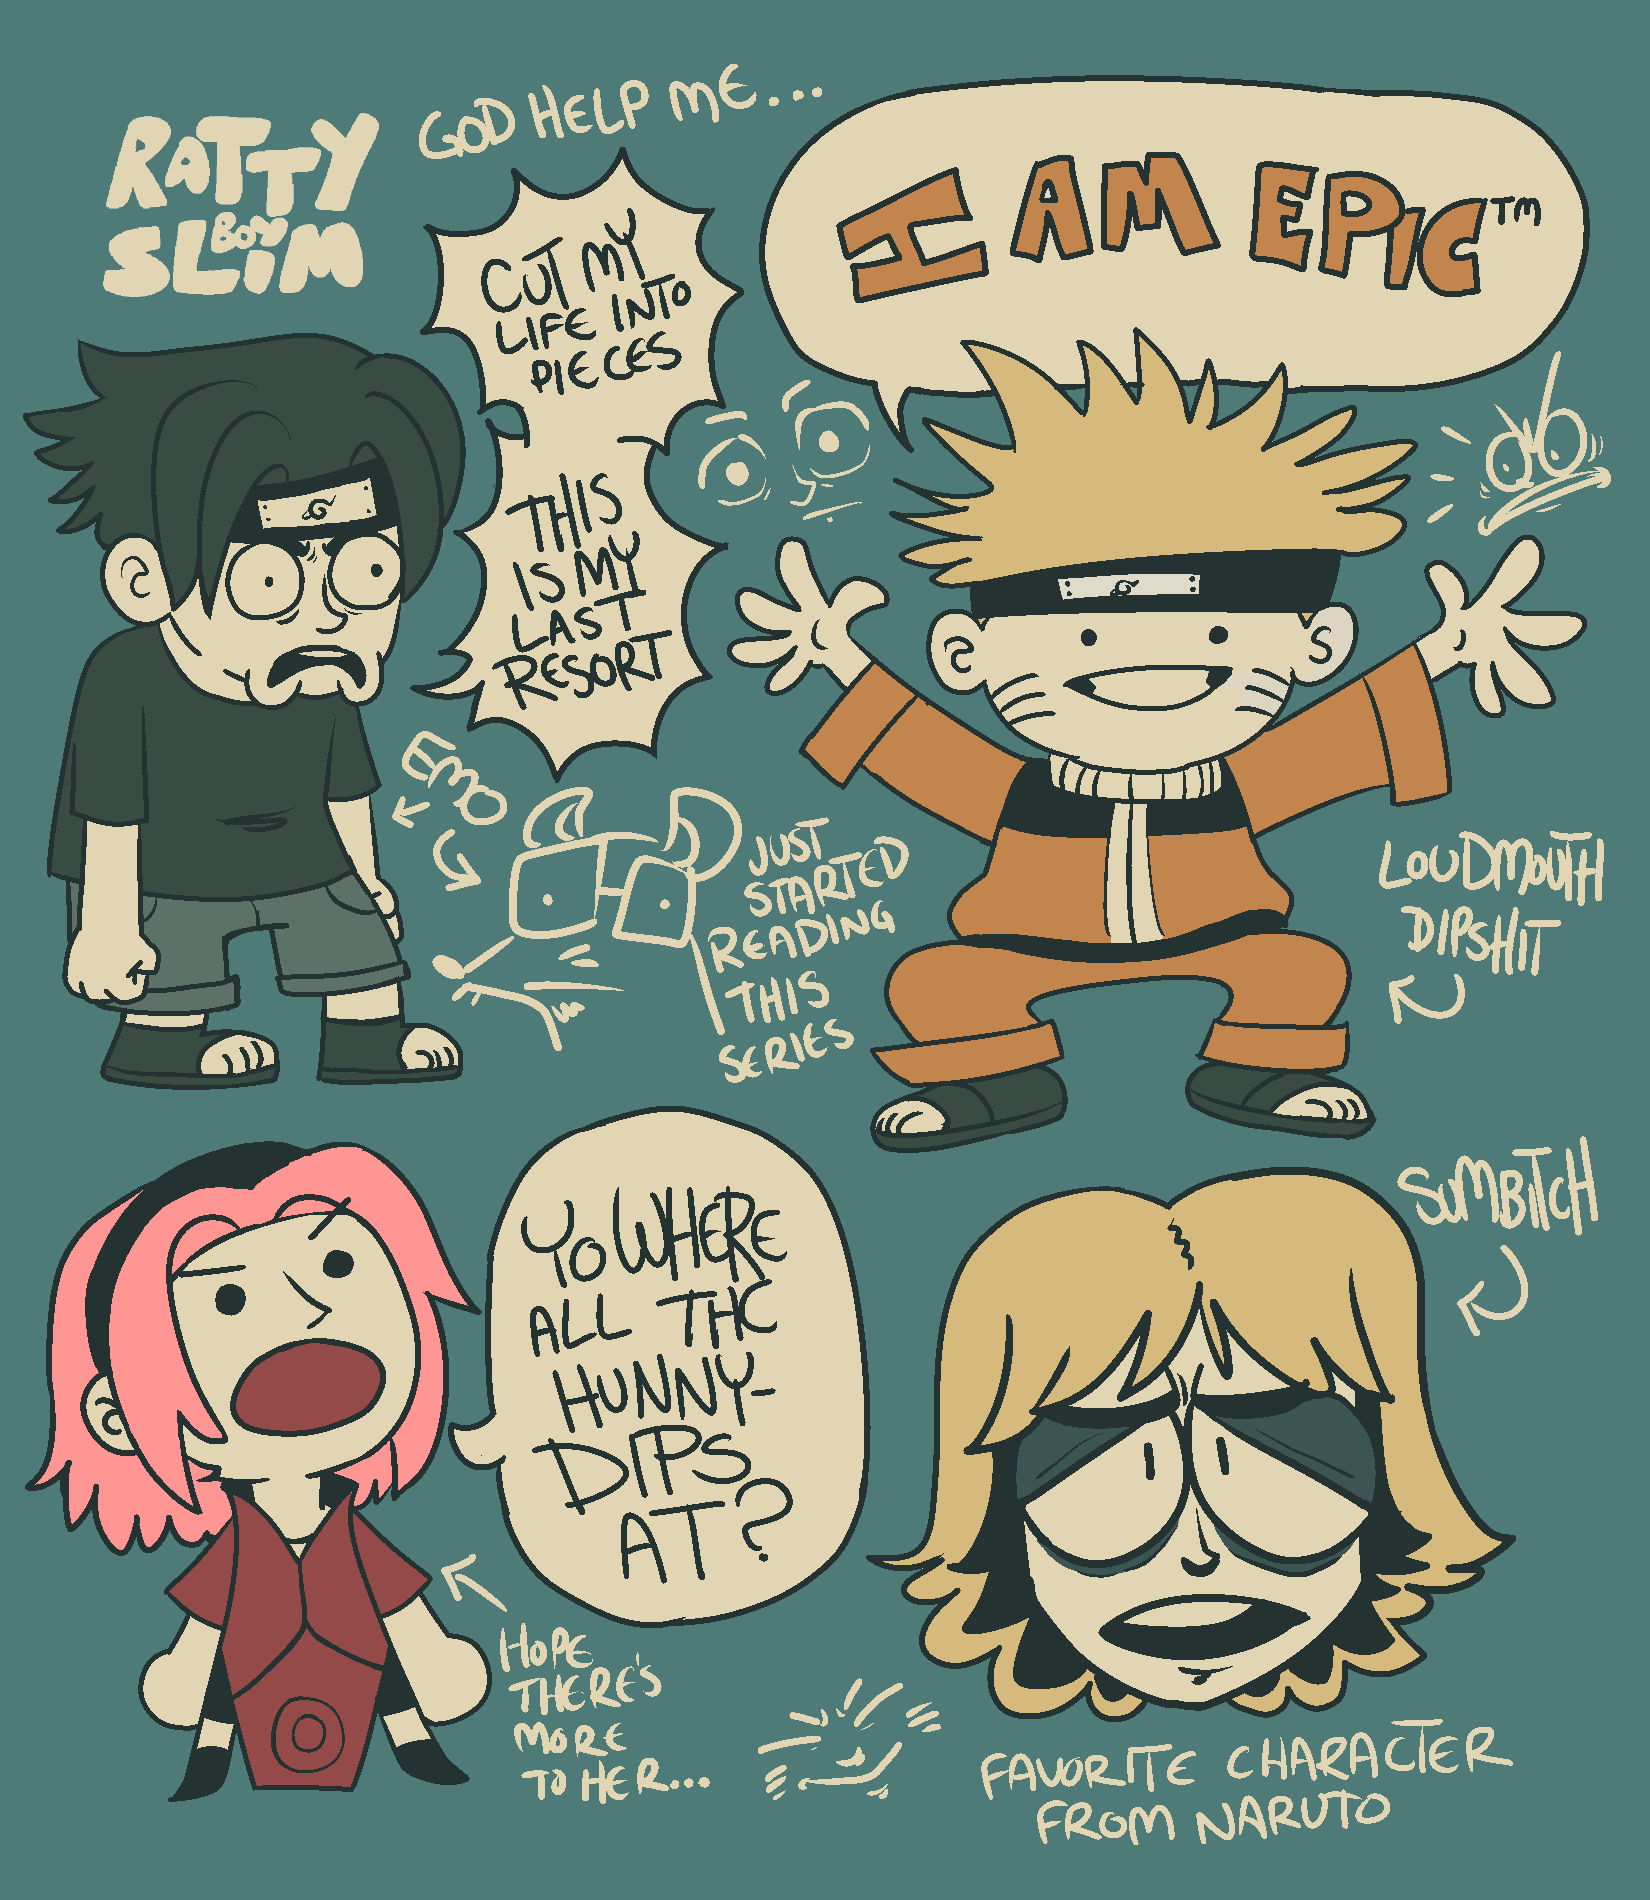 naruto and his stupid friends